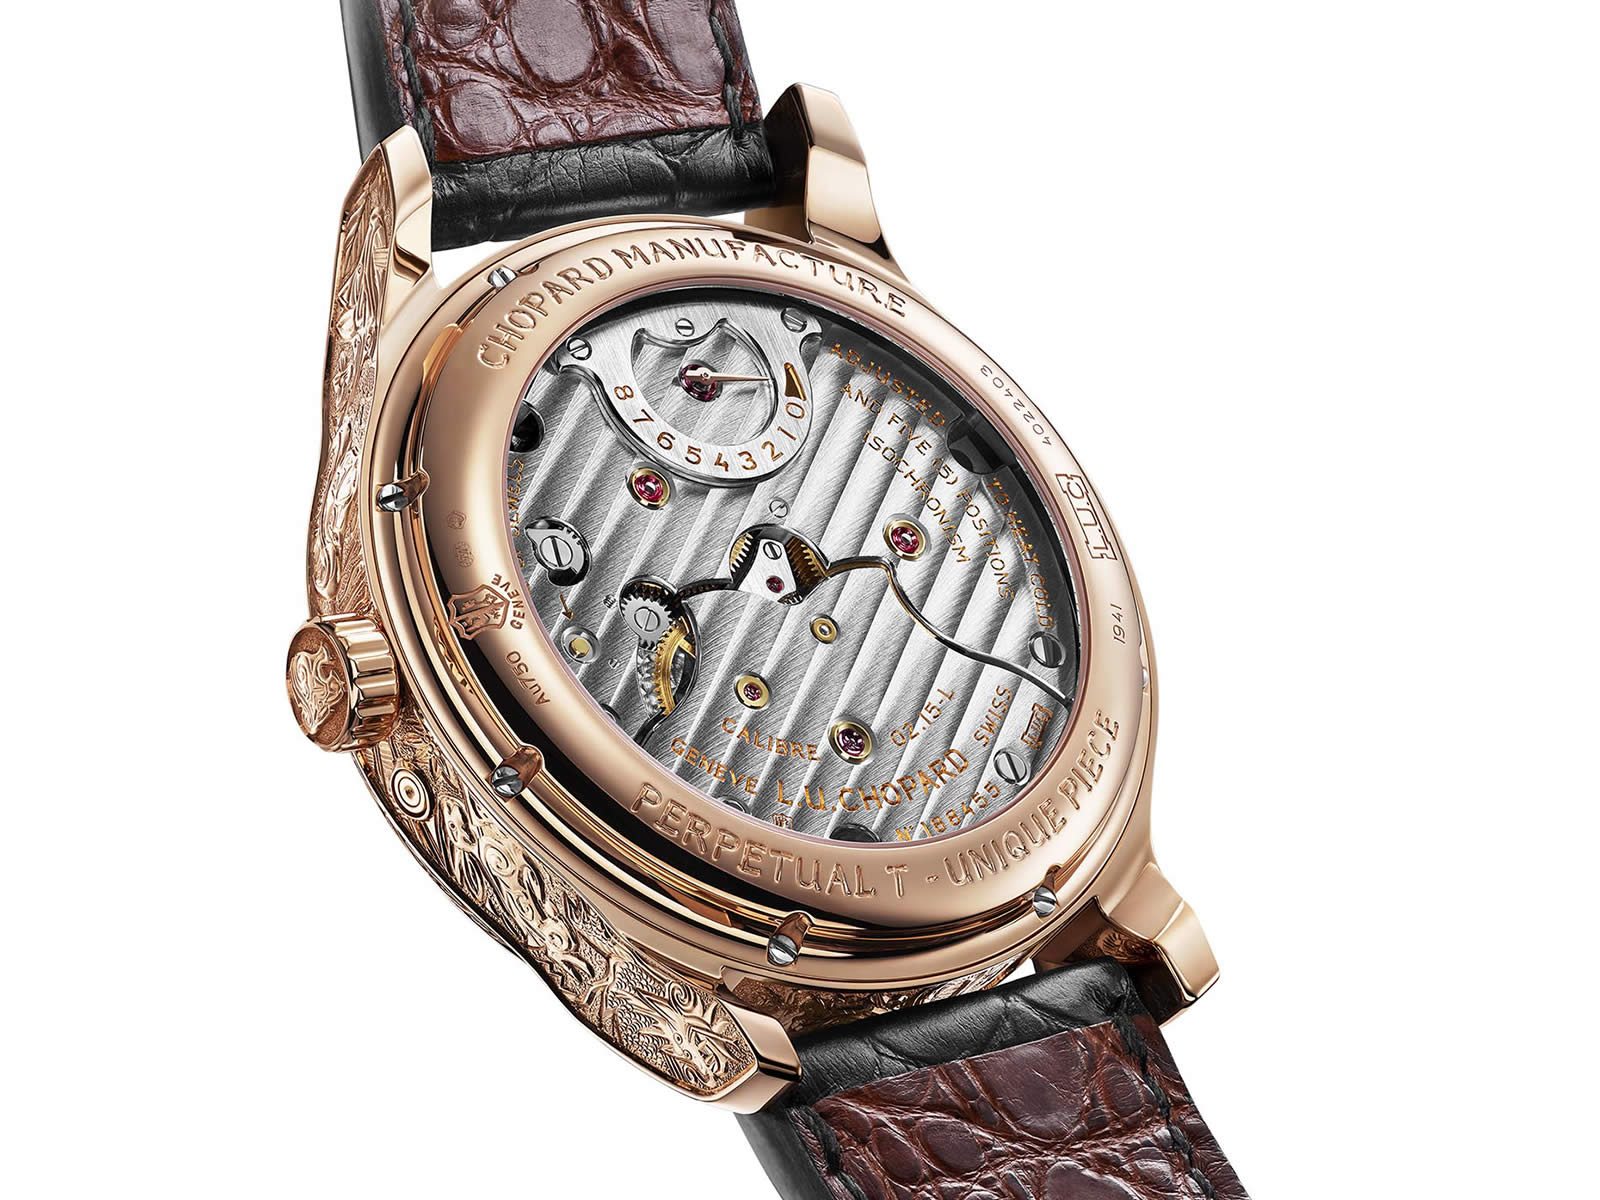 161941-5002-chopard-l-u-c-perpetual-t-spirit-of-the-chinese-zodiac-6-.jpg